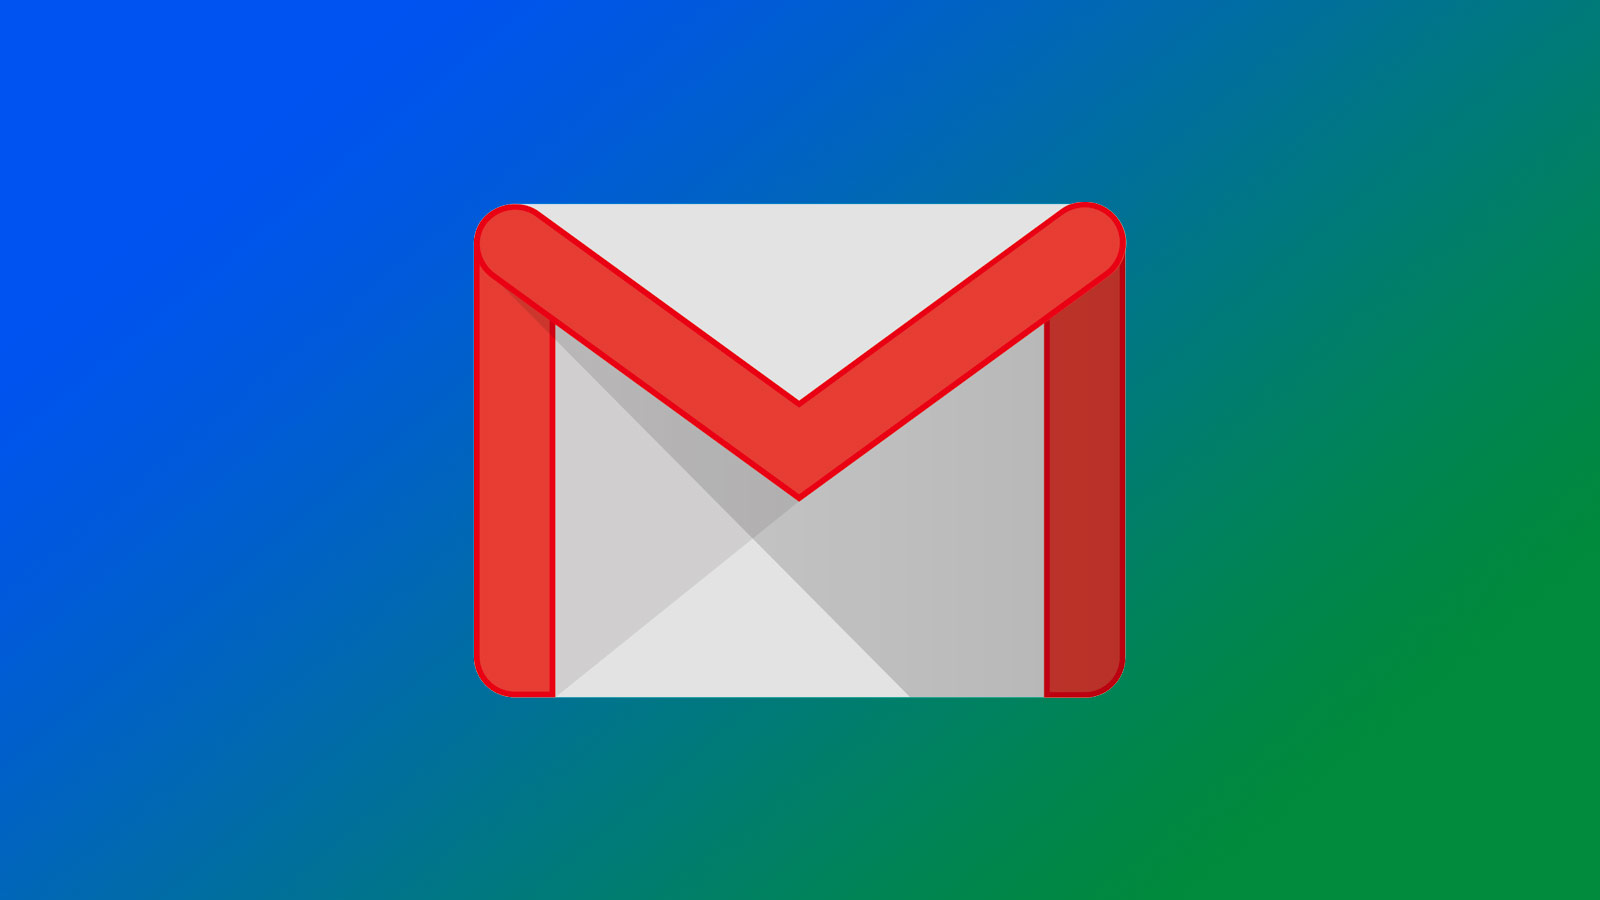 How to send HTML emails in Gmail